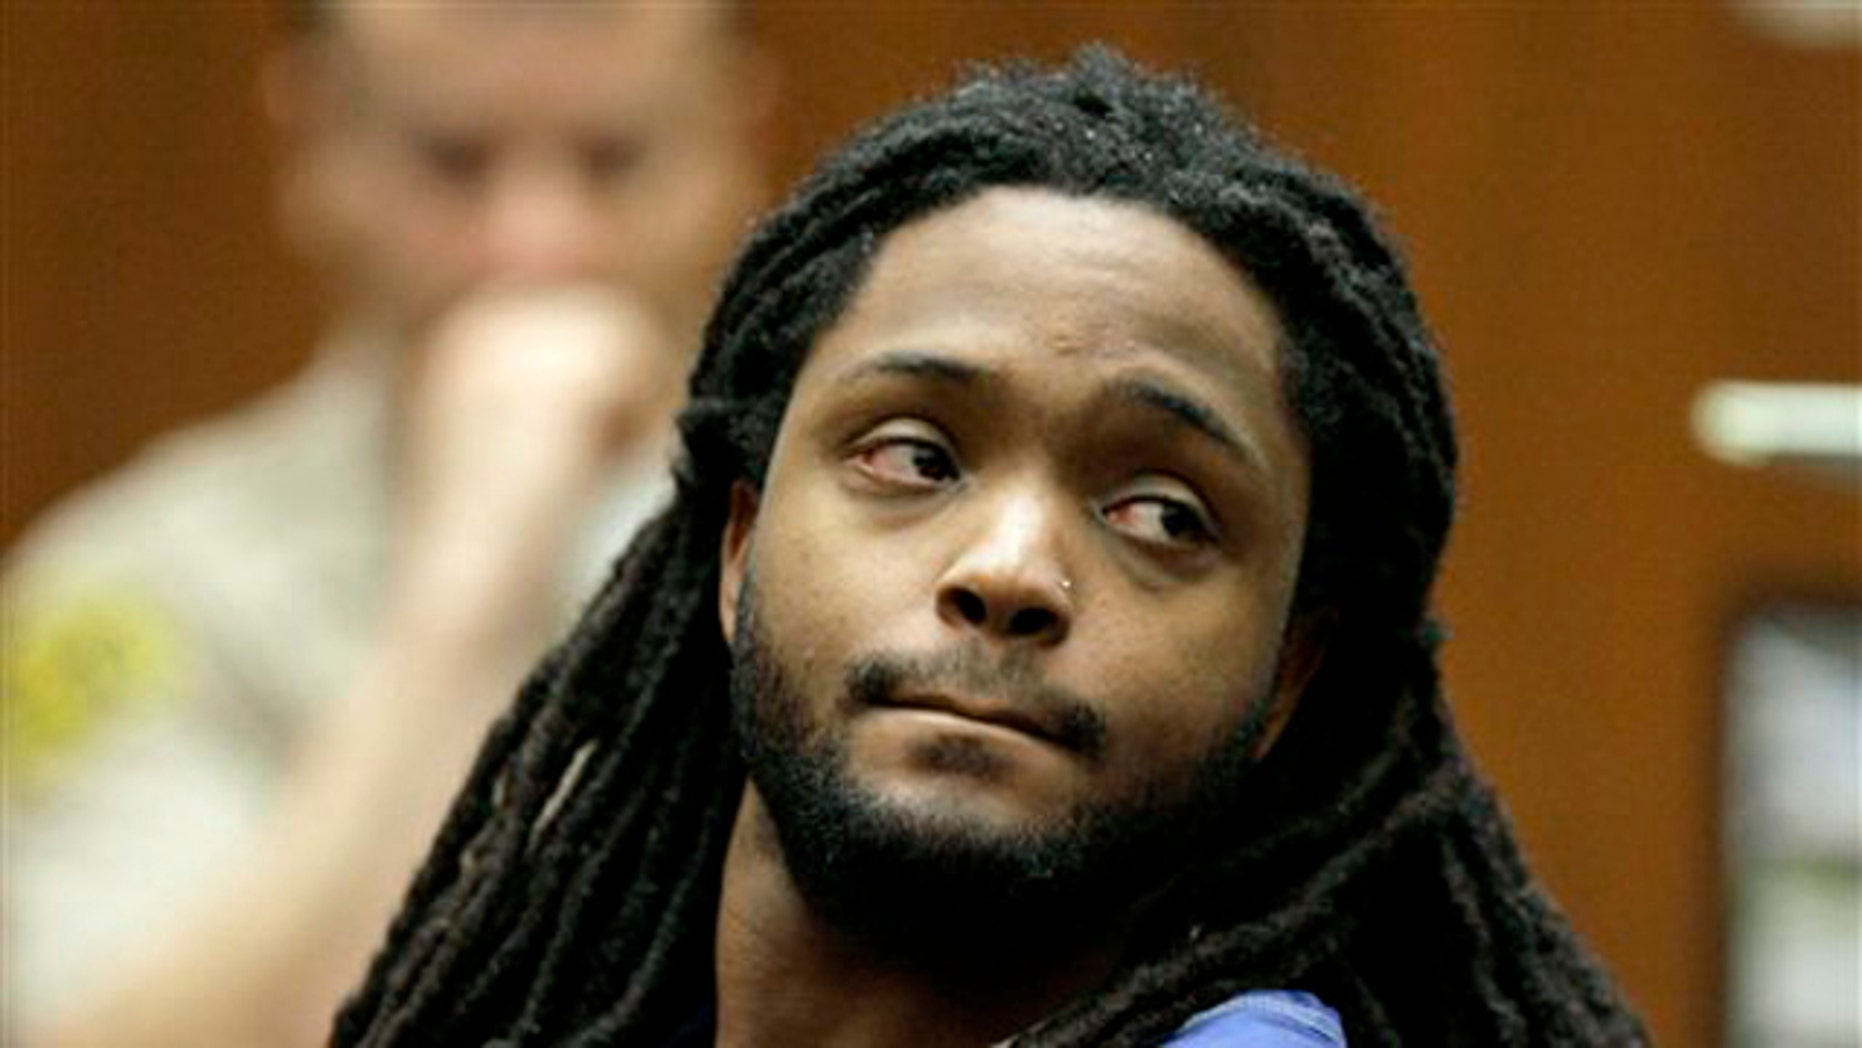 May 26: Defendant Aubrey Louis Berry is shown at a bail reduction hearing in Los Angeles Superior Court in Los Angeles. Berry has pleaded not guilty in the shooting death of Atlanta rapper Dolla, born Roderick Anthony Burton II, at a Los Angeles mall.